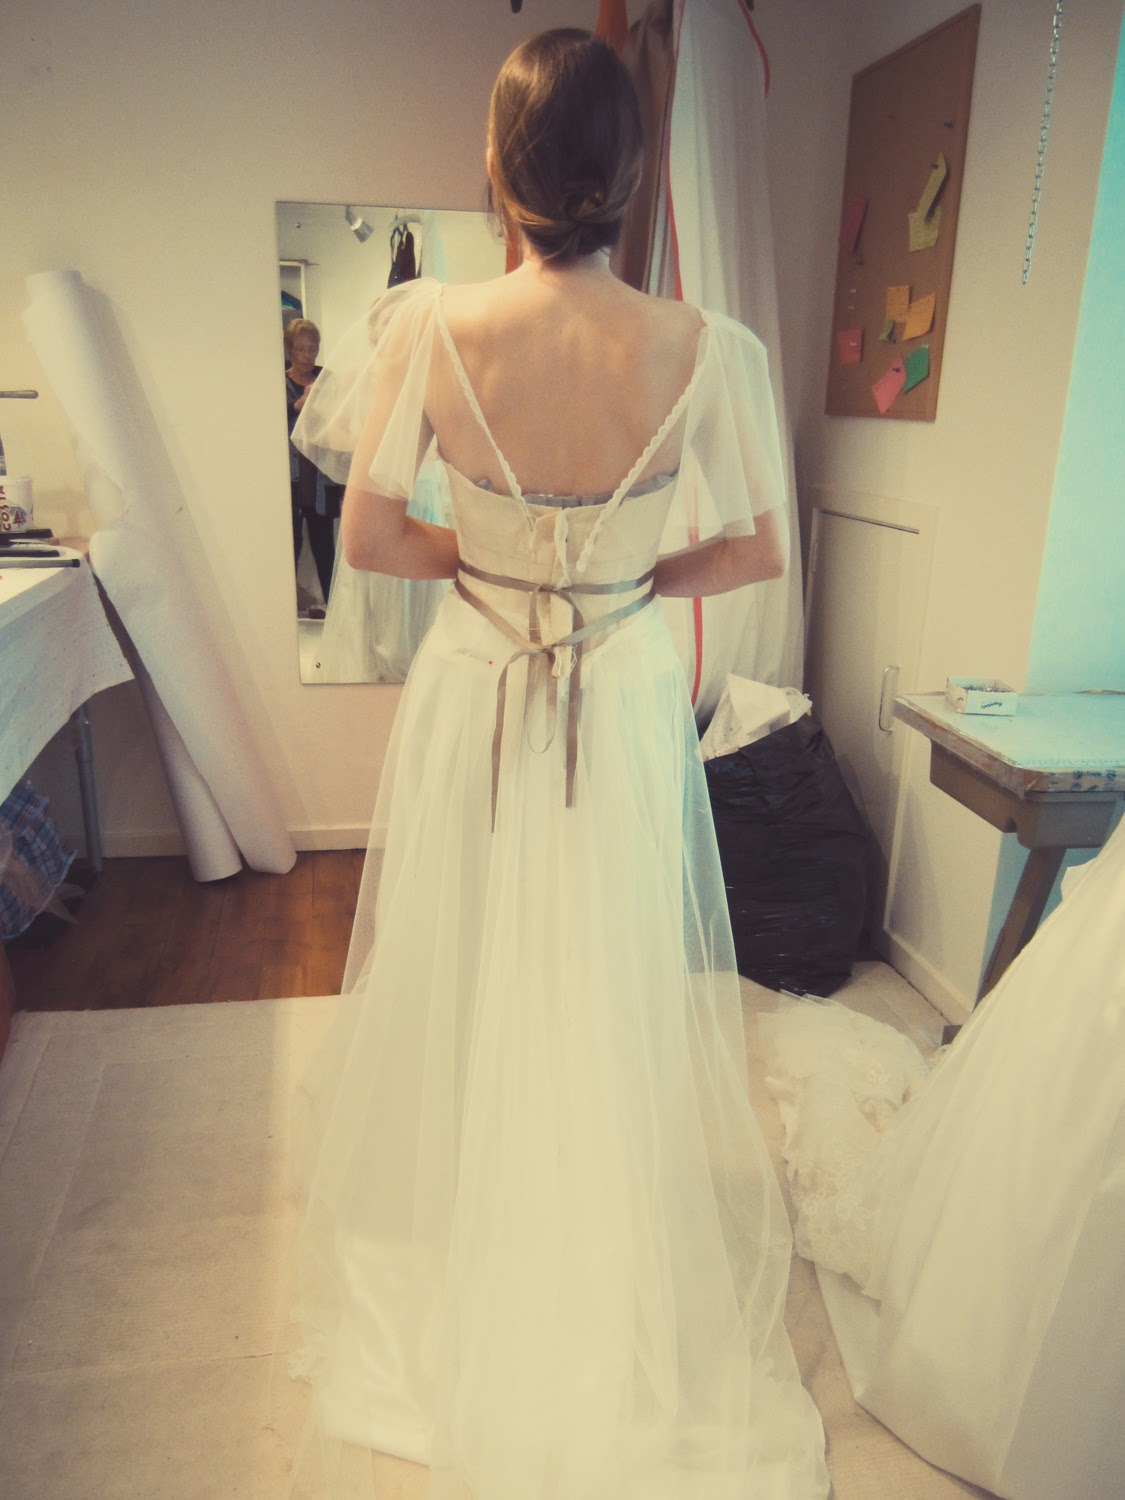 The Calico fitting  - The making of my wedding dress